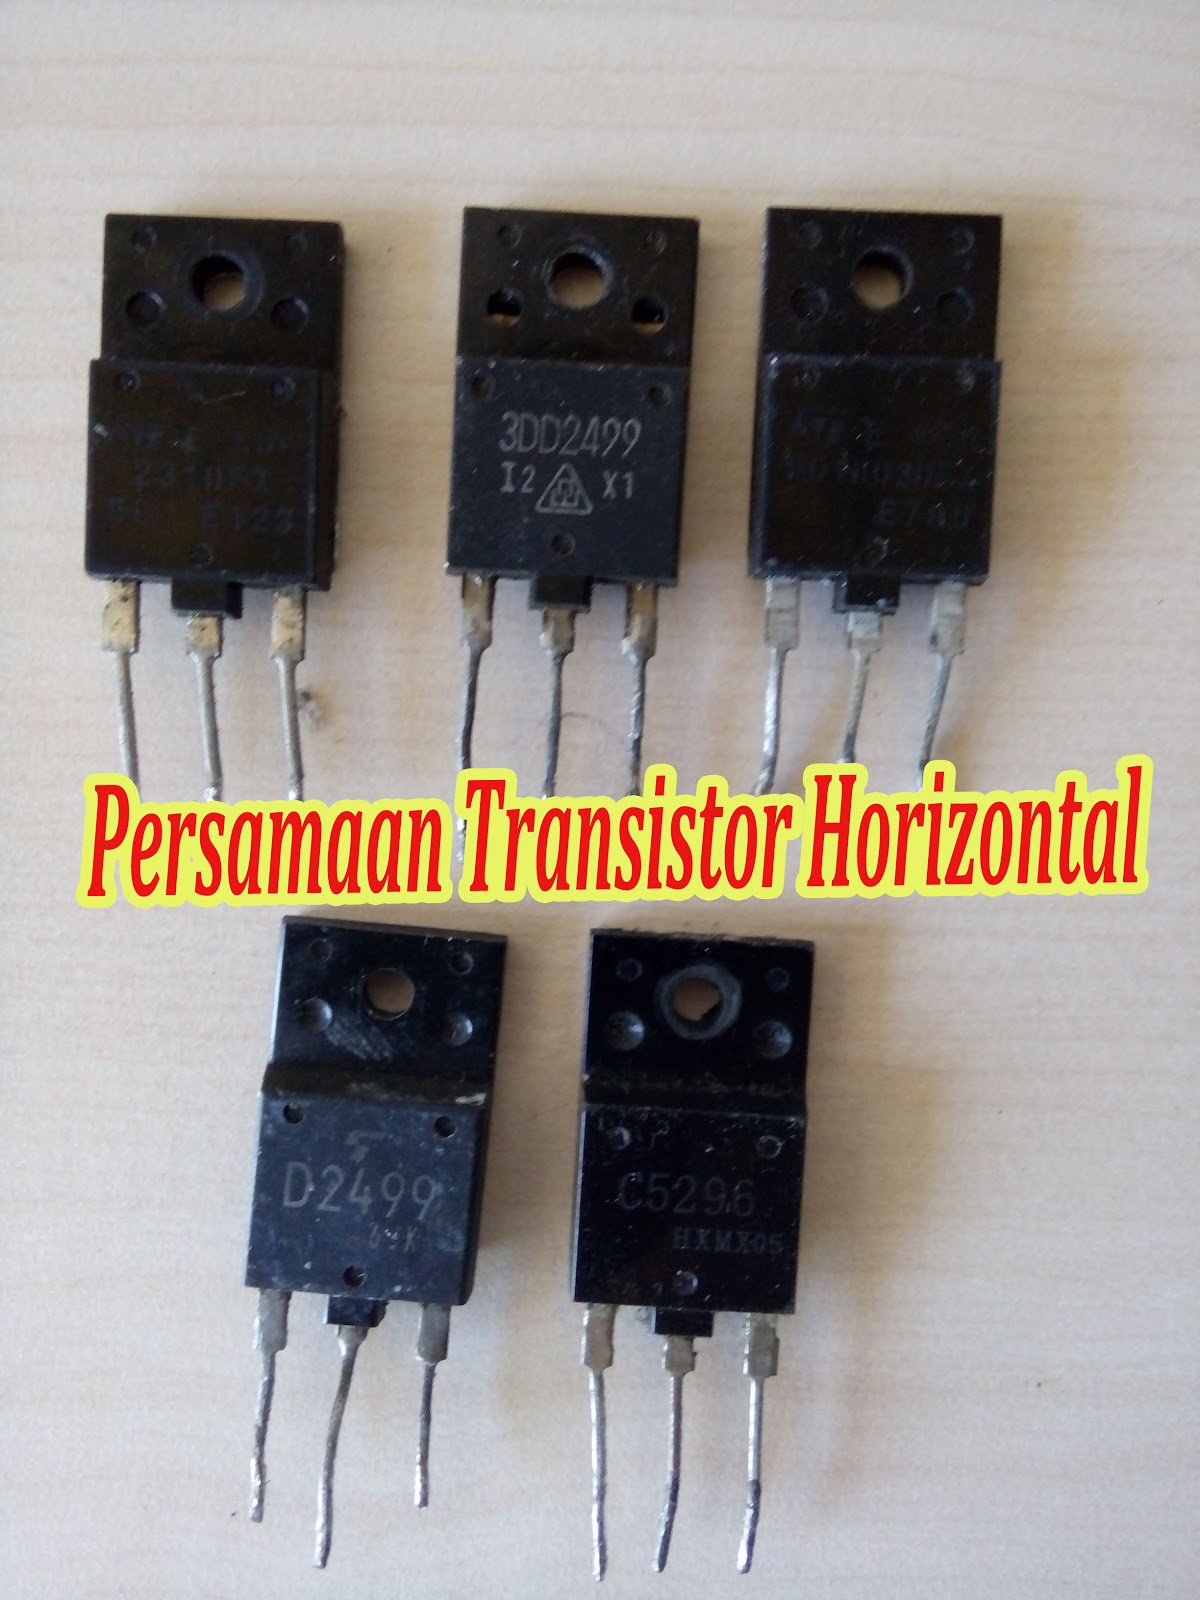 electronic circuit diagram tv horzontal d2499 2sd2499 and fbt bsc25persamaan transistor horisontal beberapa merk tvelectronic circuit diagram tv horzontal d2499 2sd2499 and fbt bsc25